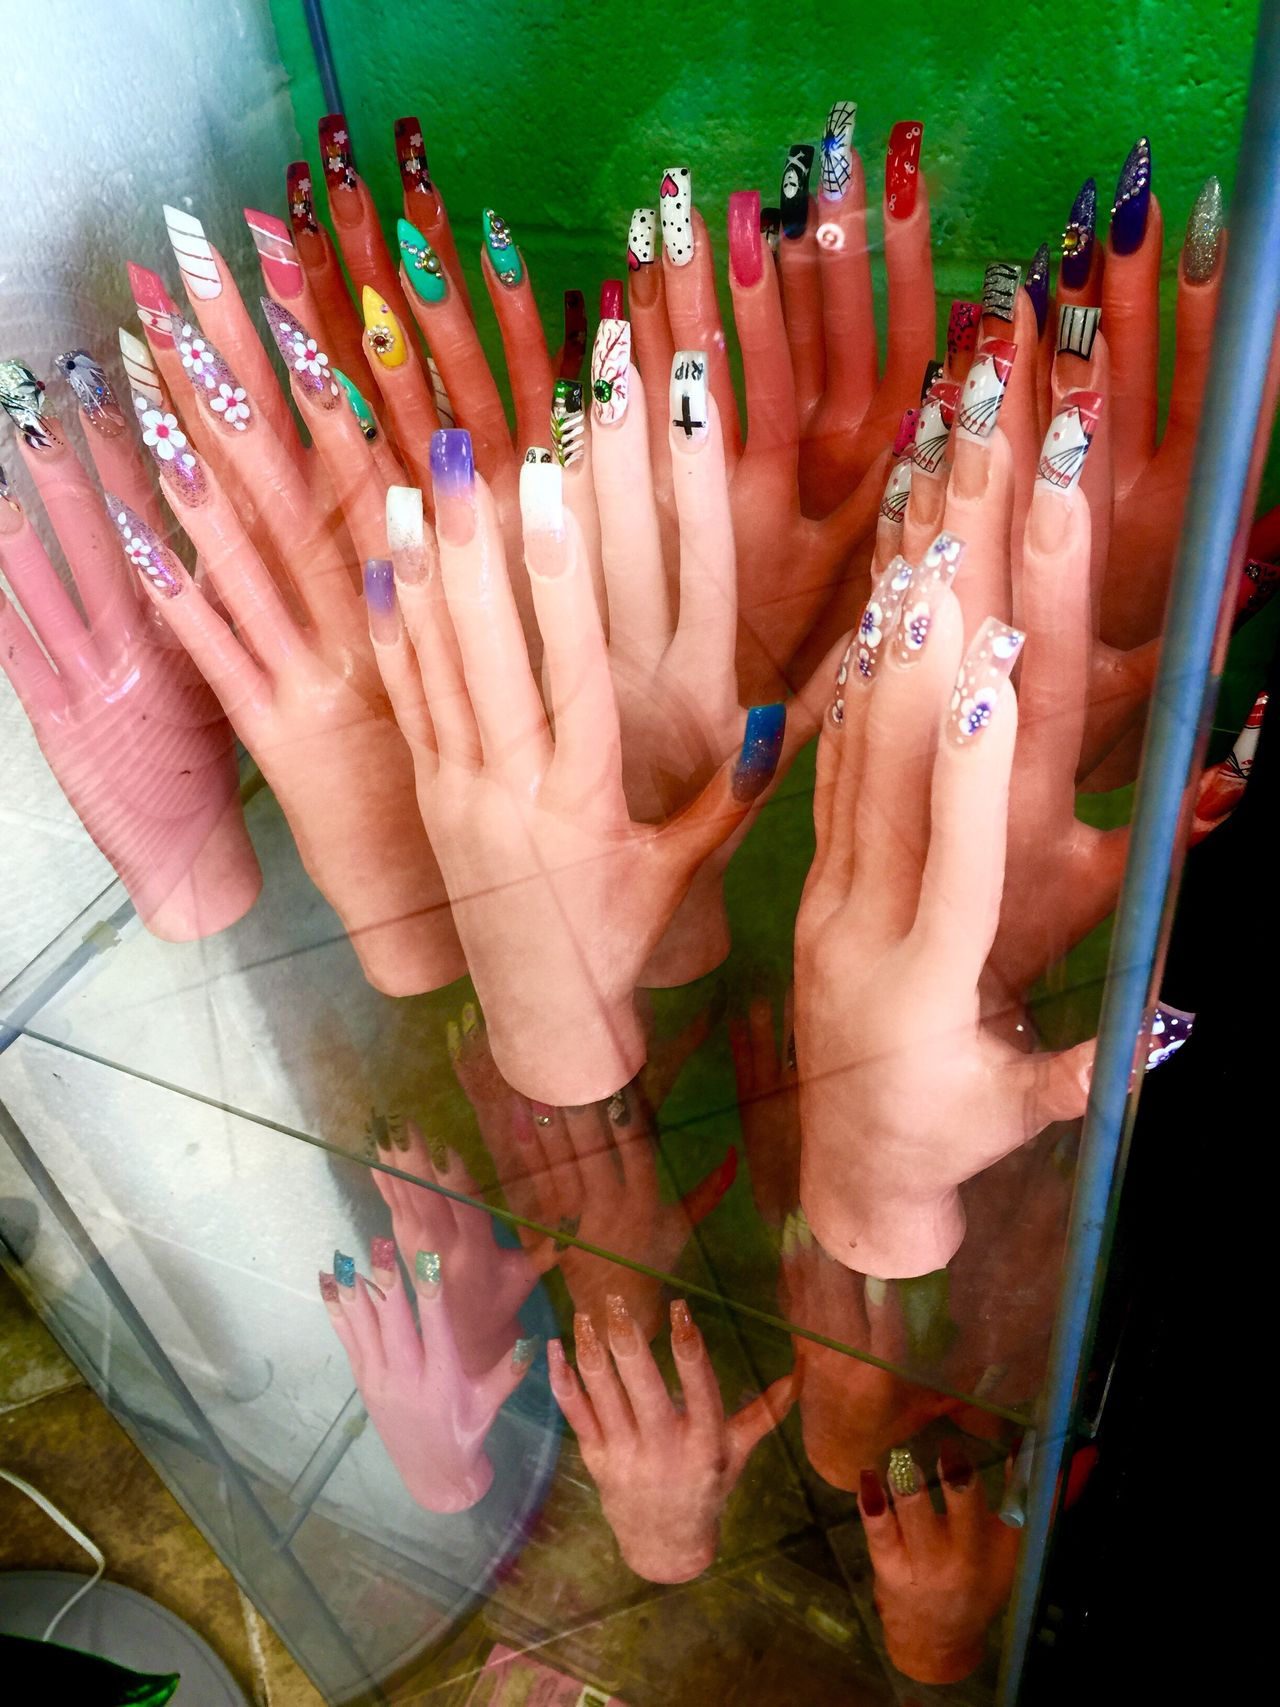 Which one you like? Human Hand Human Body Part Multi Colored Green Color Women Large Group Of People Palm Crowd People Adult Outdoors Adults Only Day Nails Nail Salon Nail Polish EyeEmNewHere